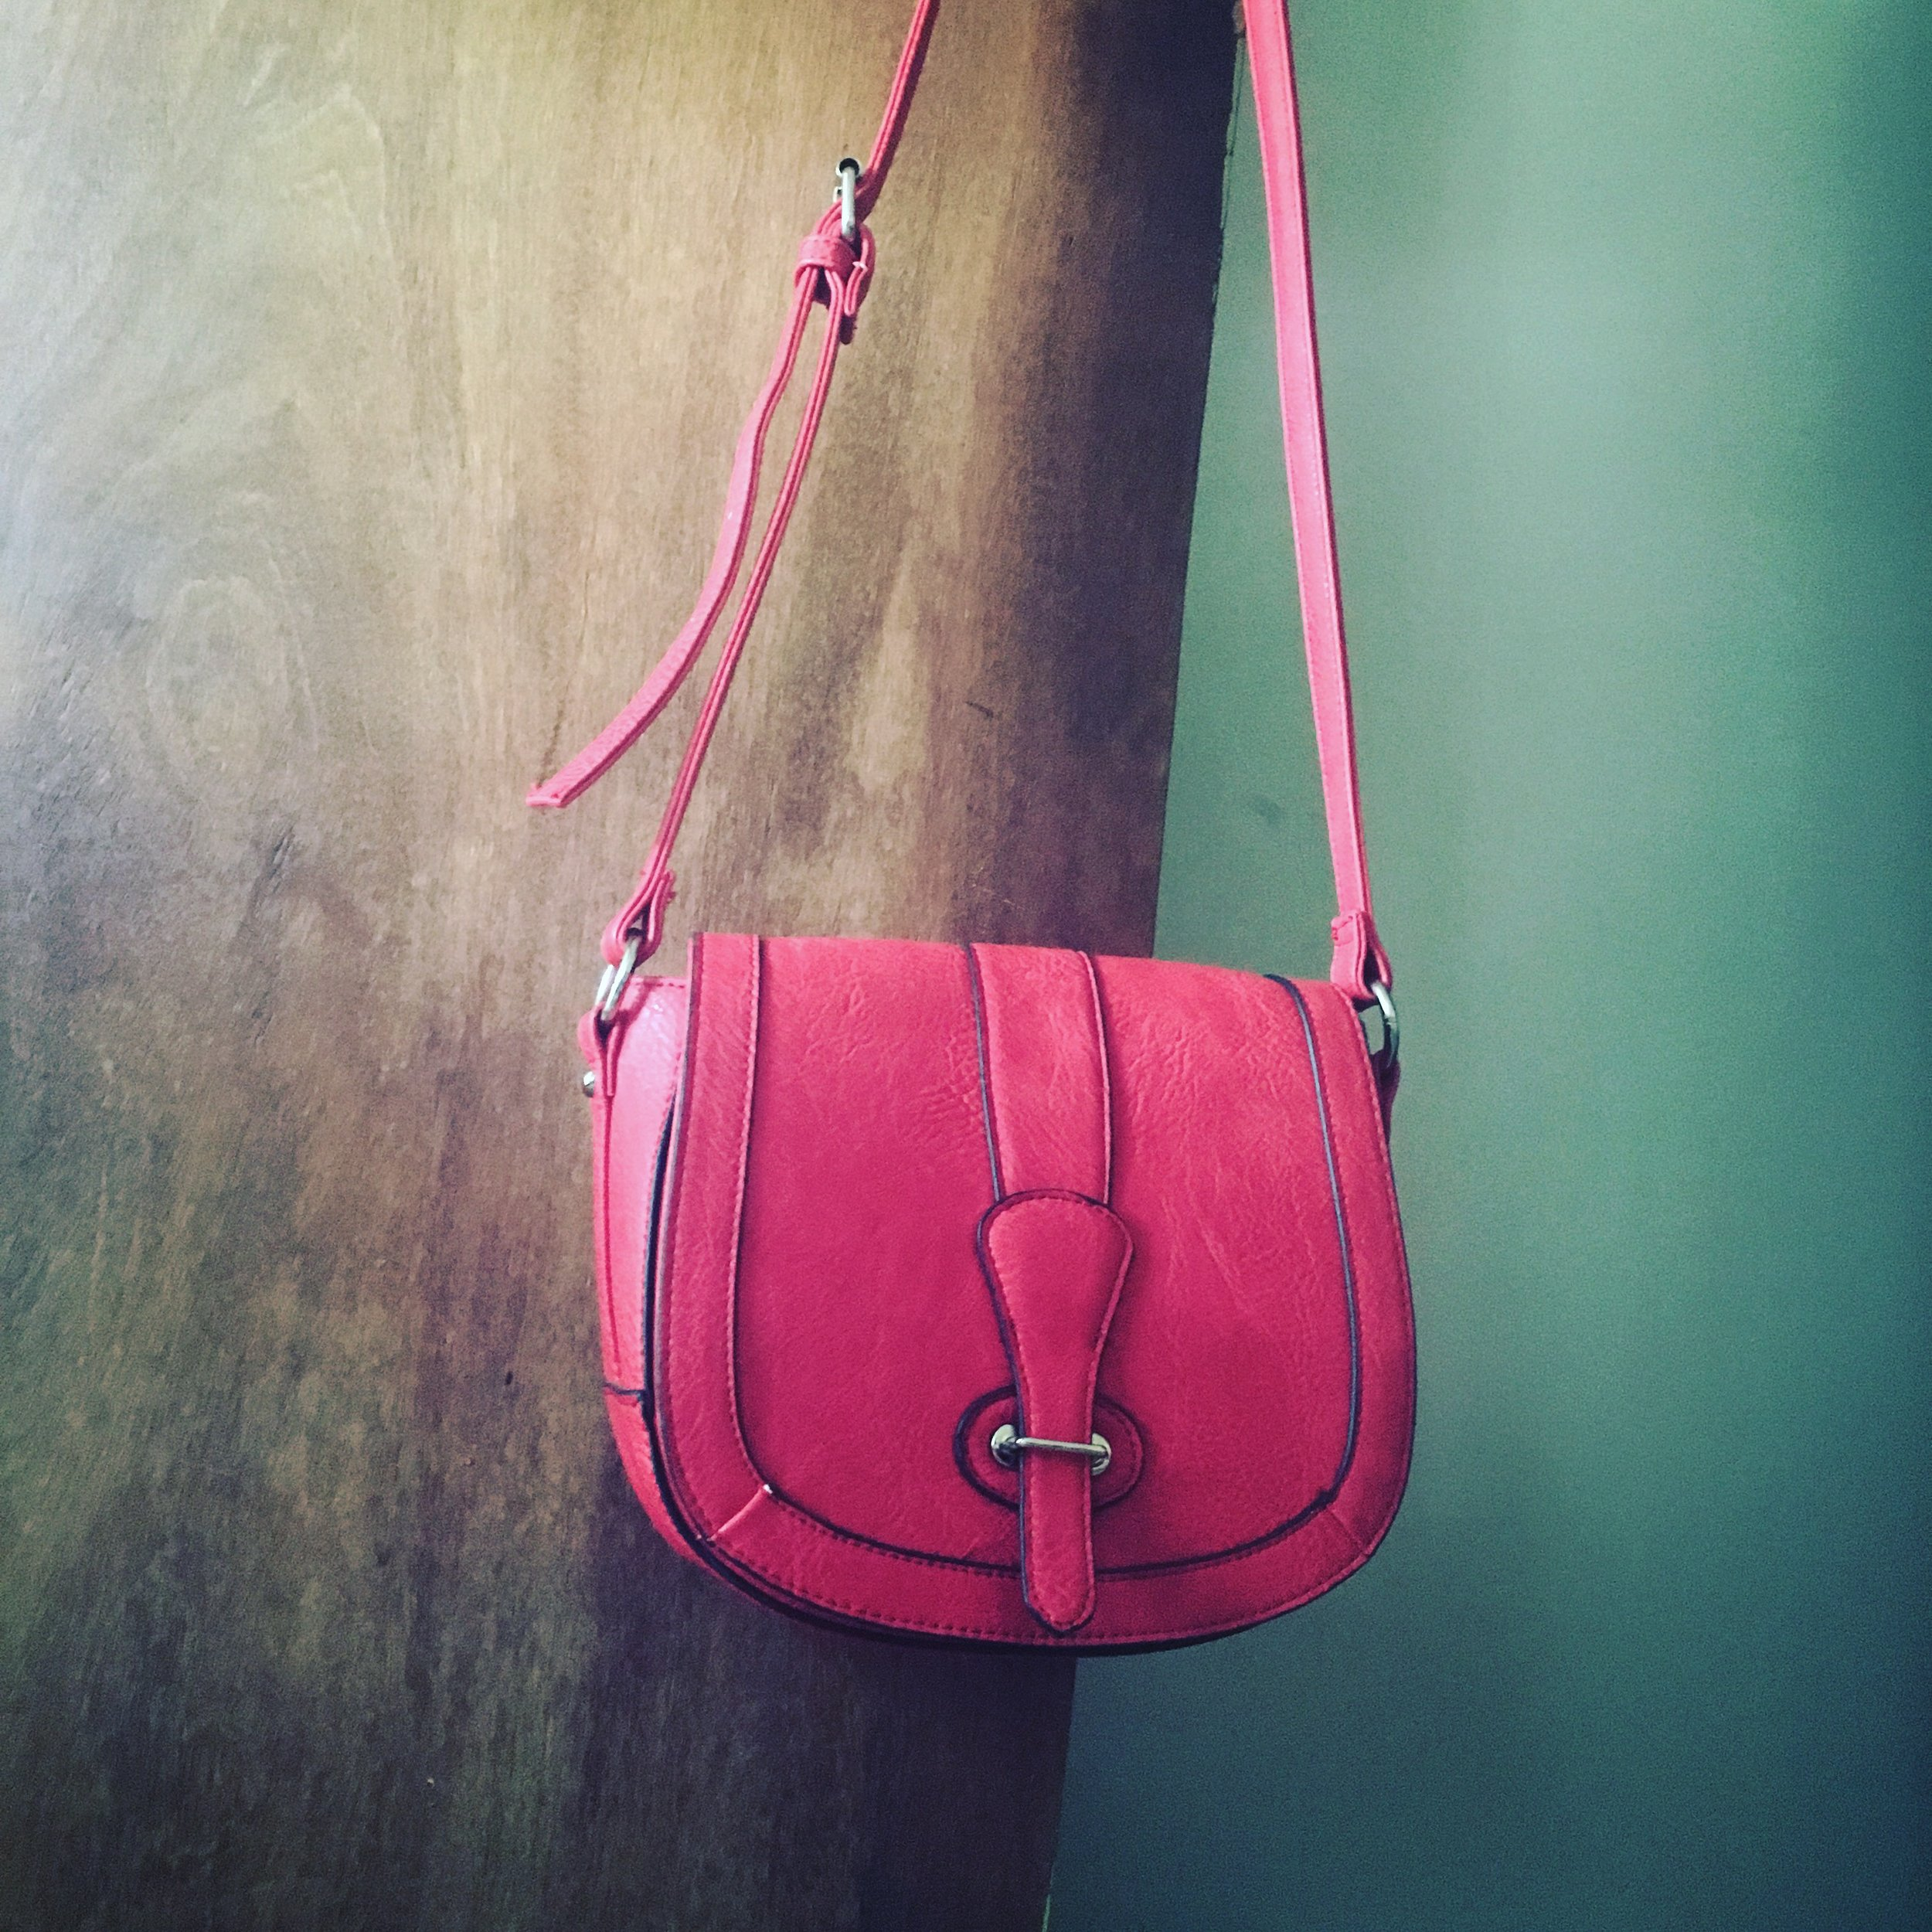 Statement Handbag  - Statement Color